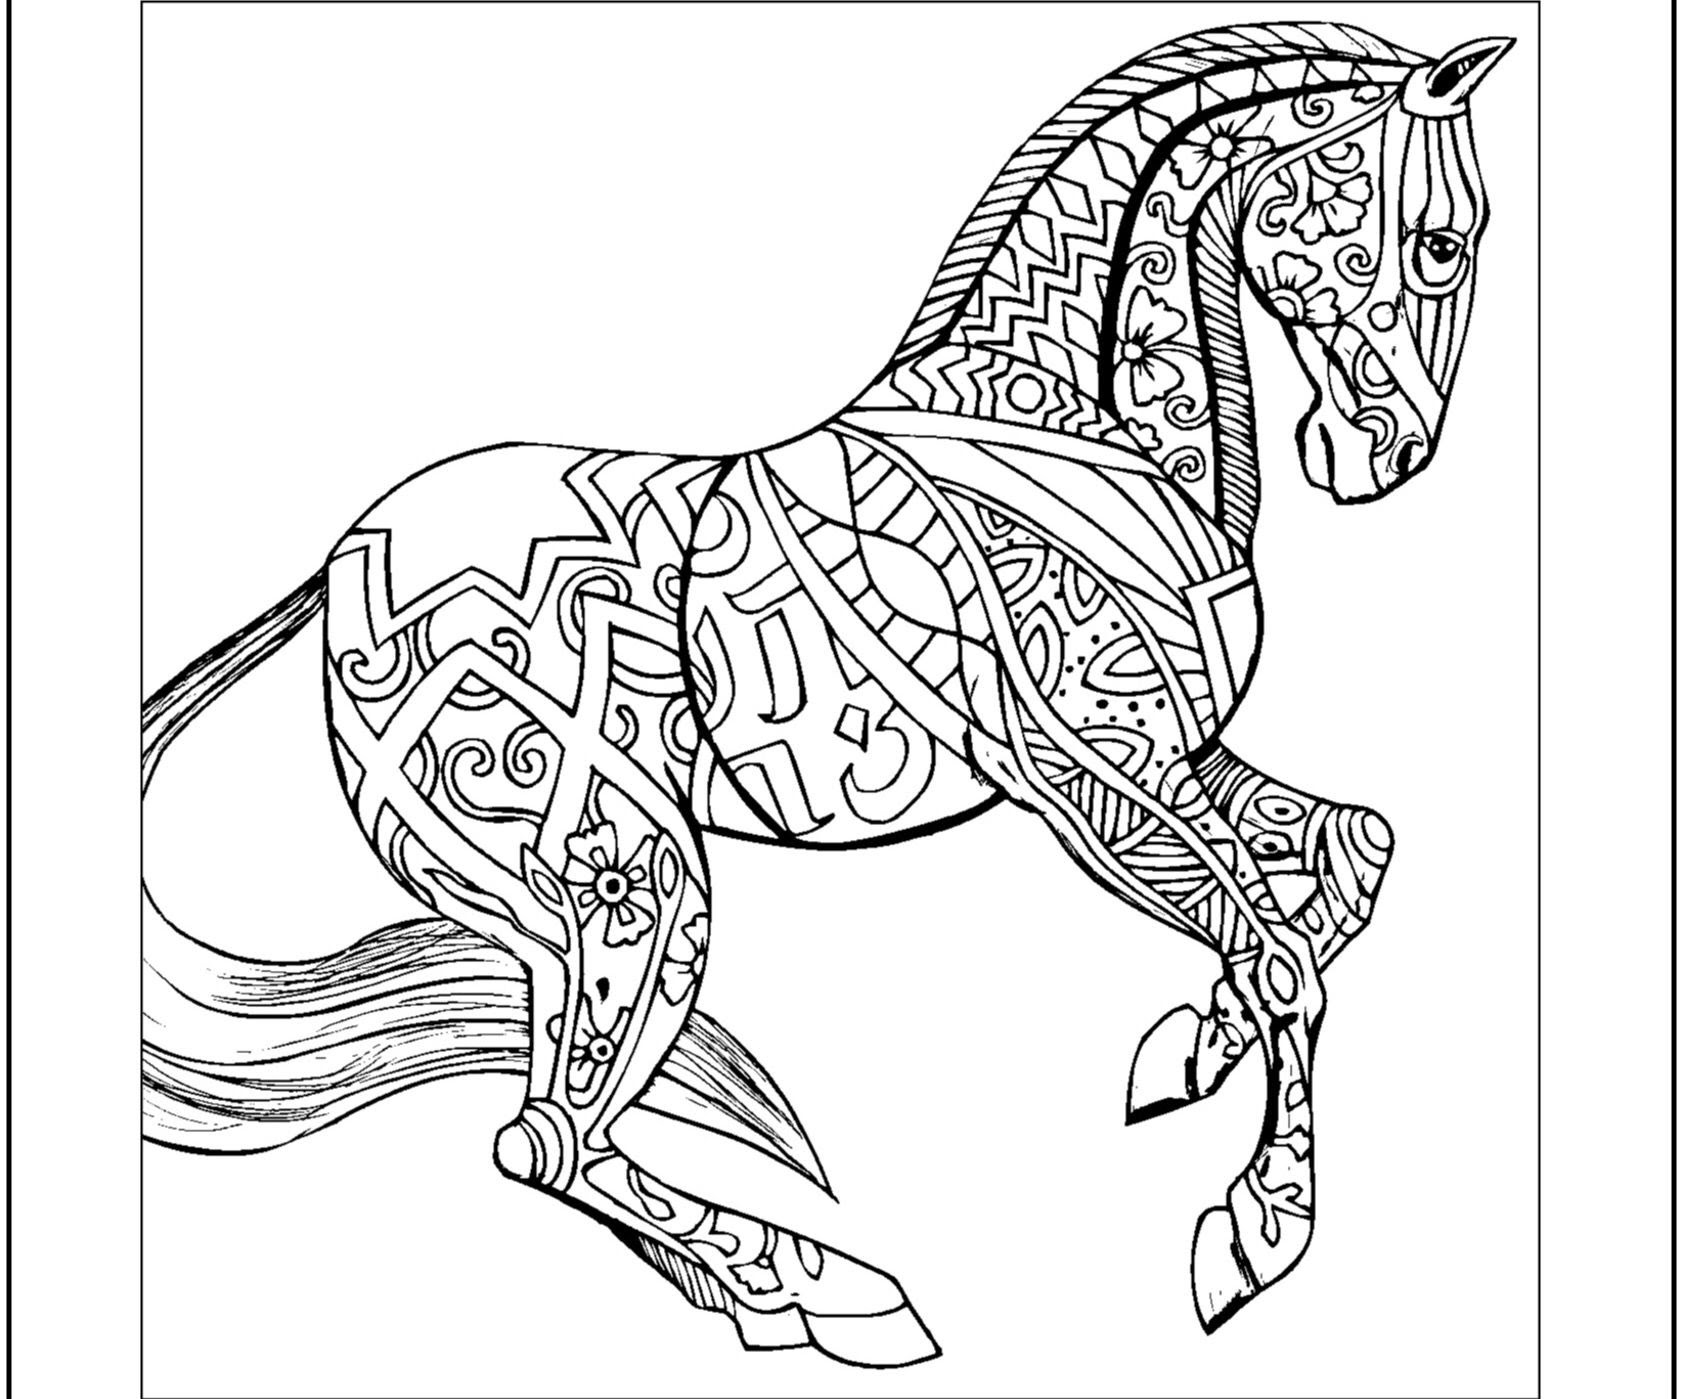 Zentangle Horse Coloring Pages at GetColorings.com | Free ...